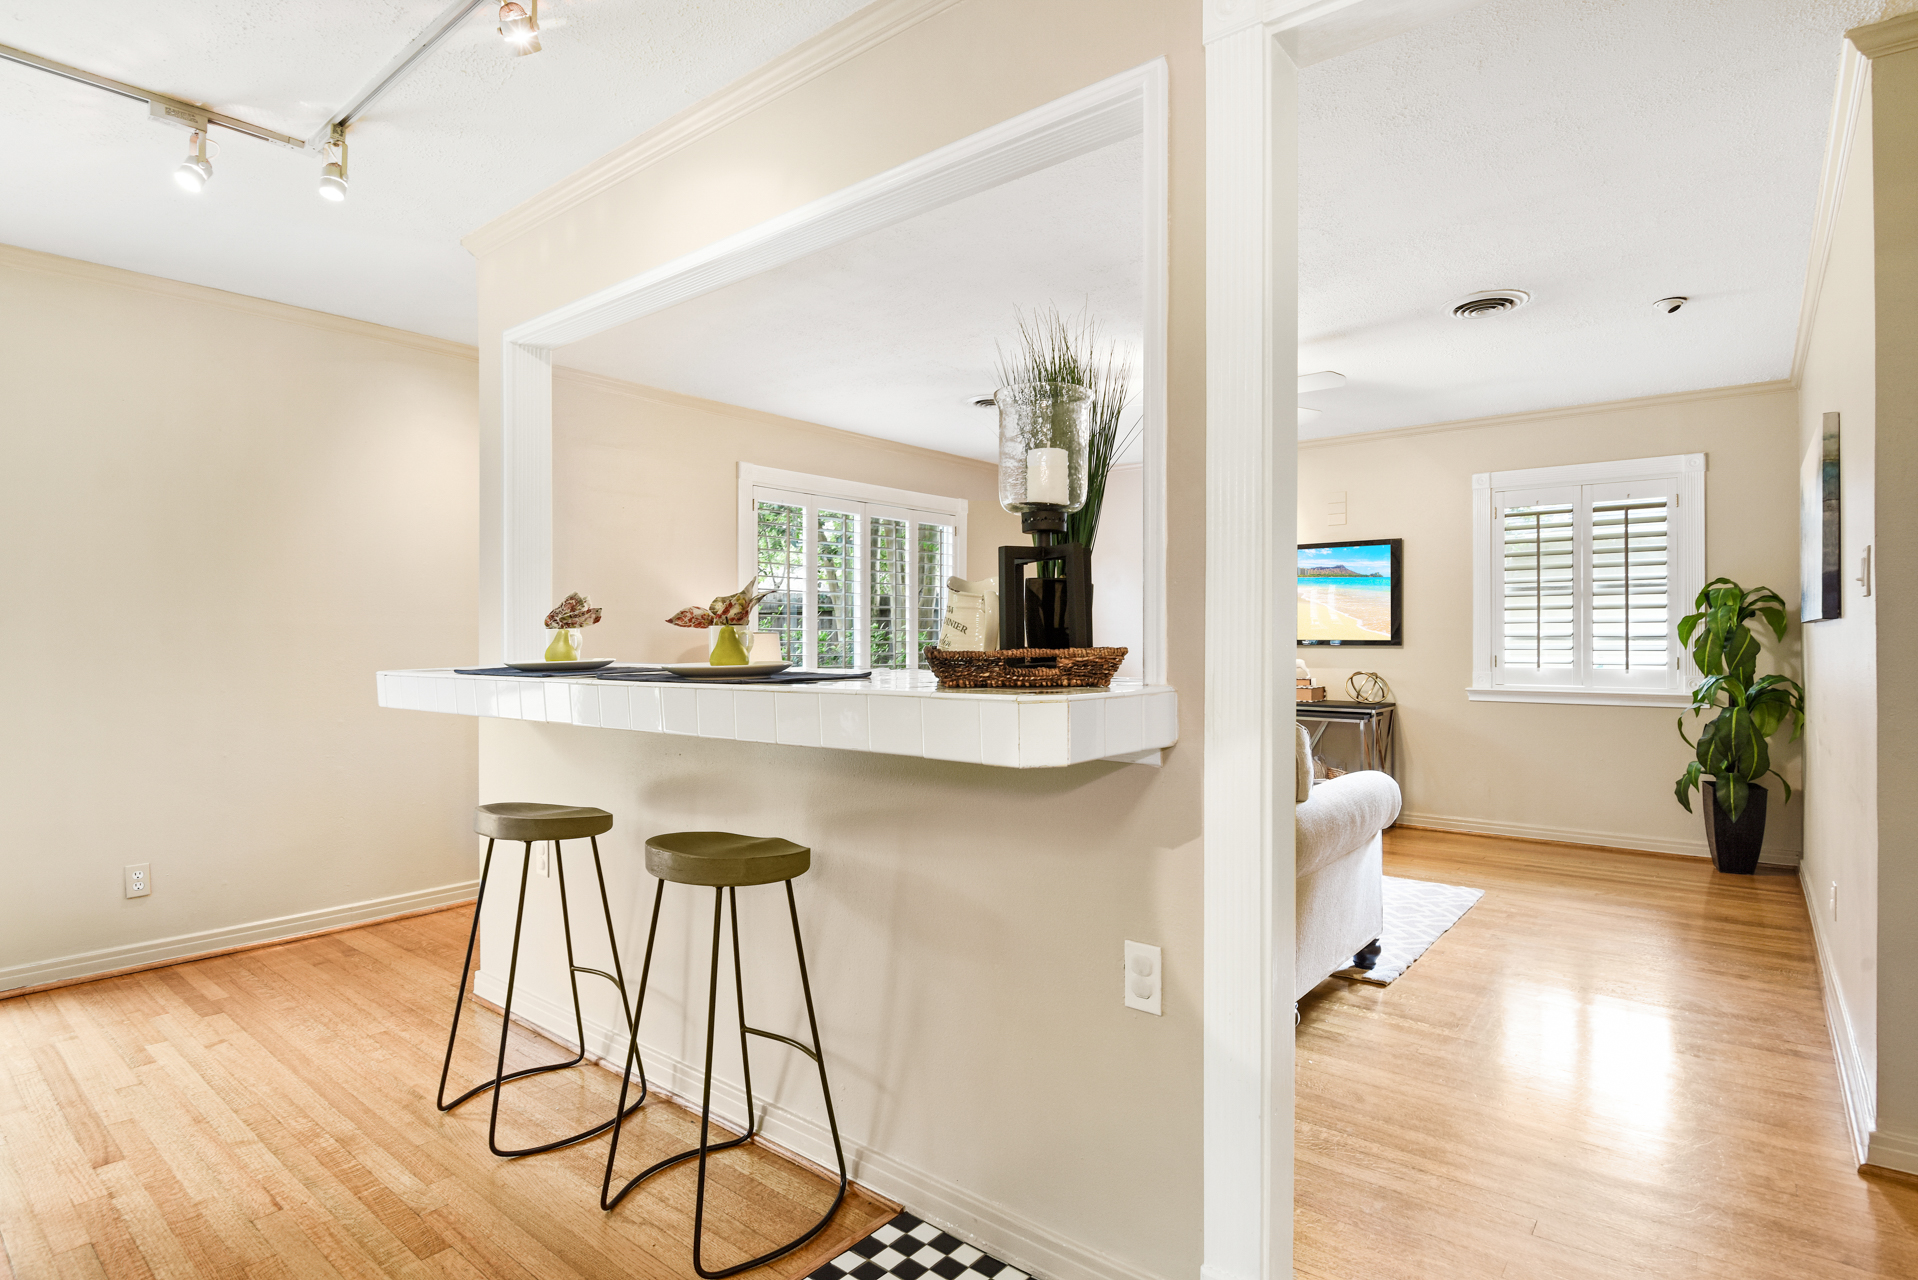 Staging The Nest - Vacant Home Staging - Island